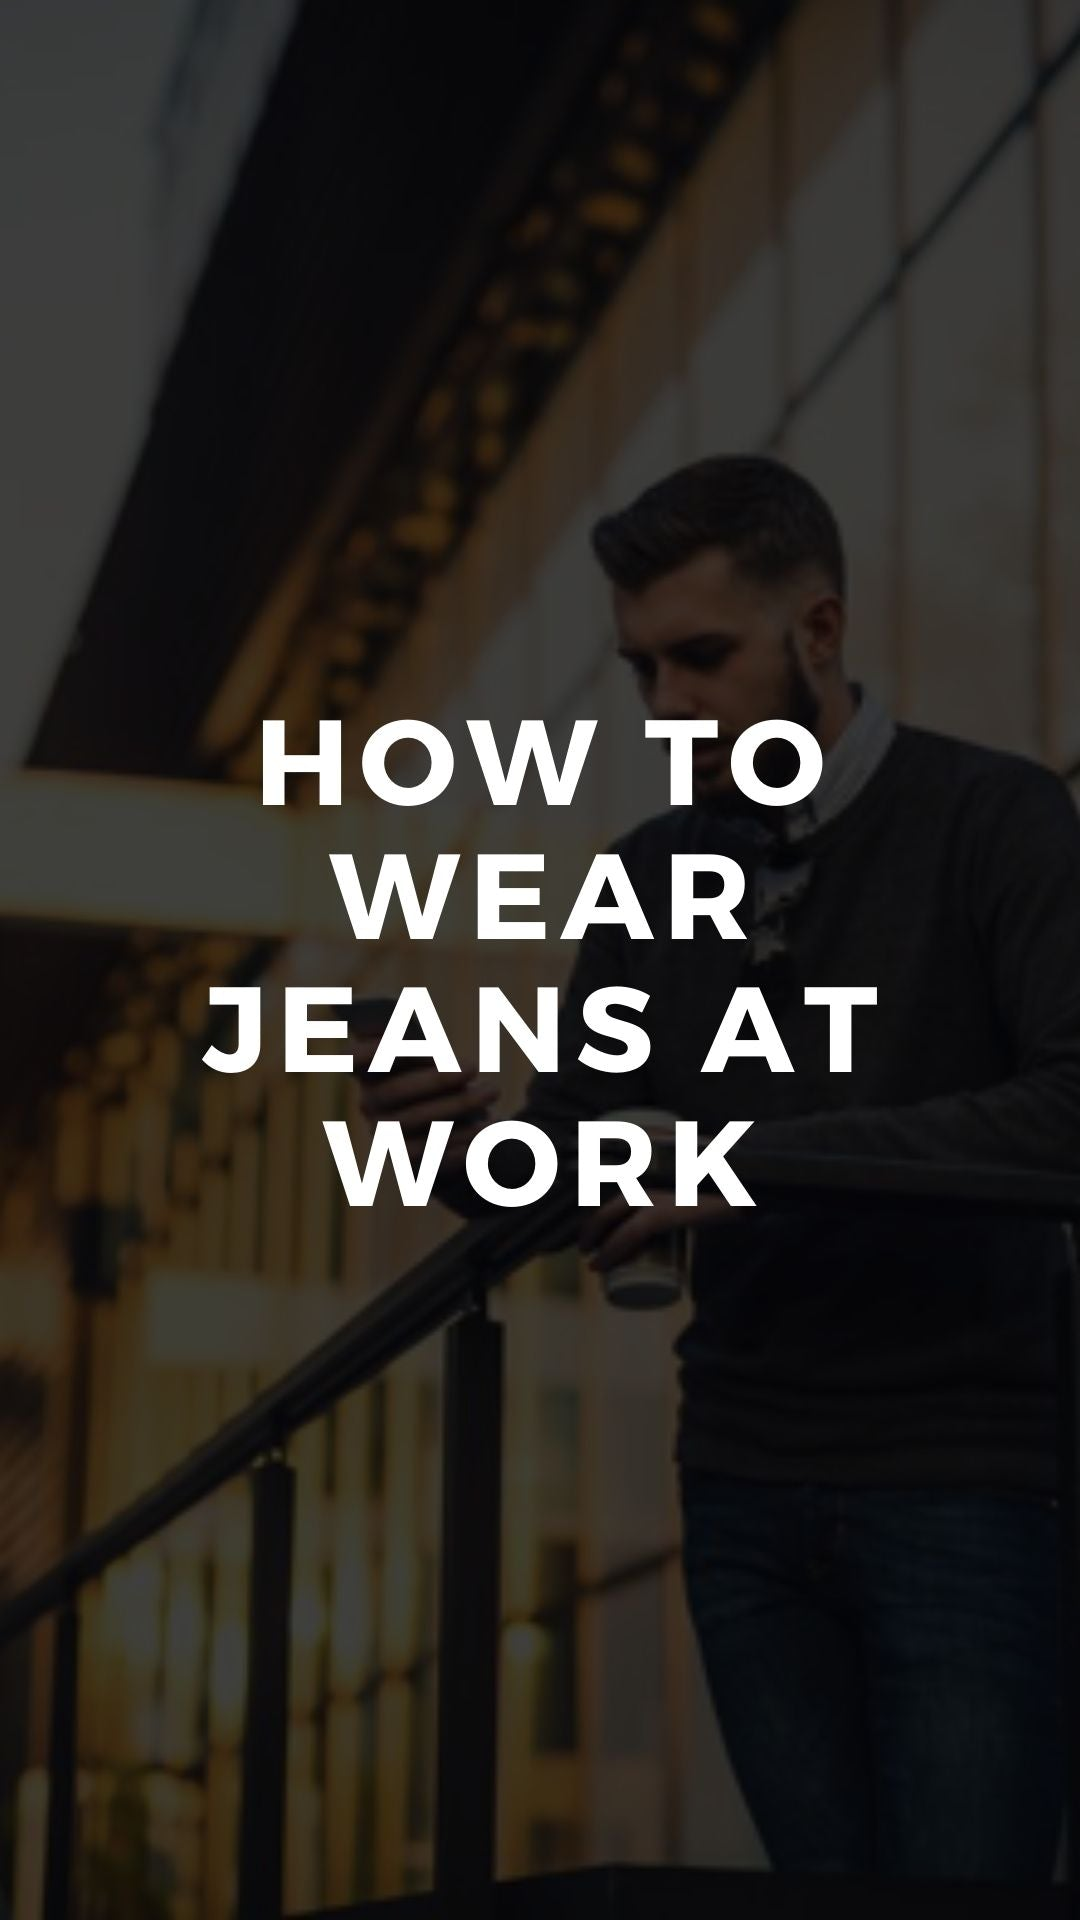 How to Wear Jeans at Work